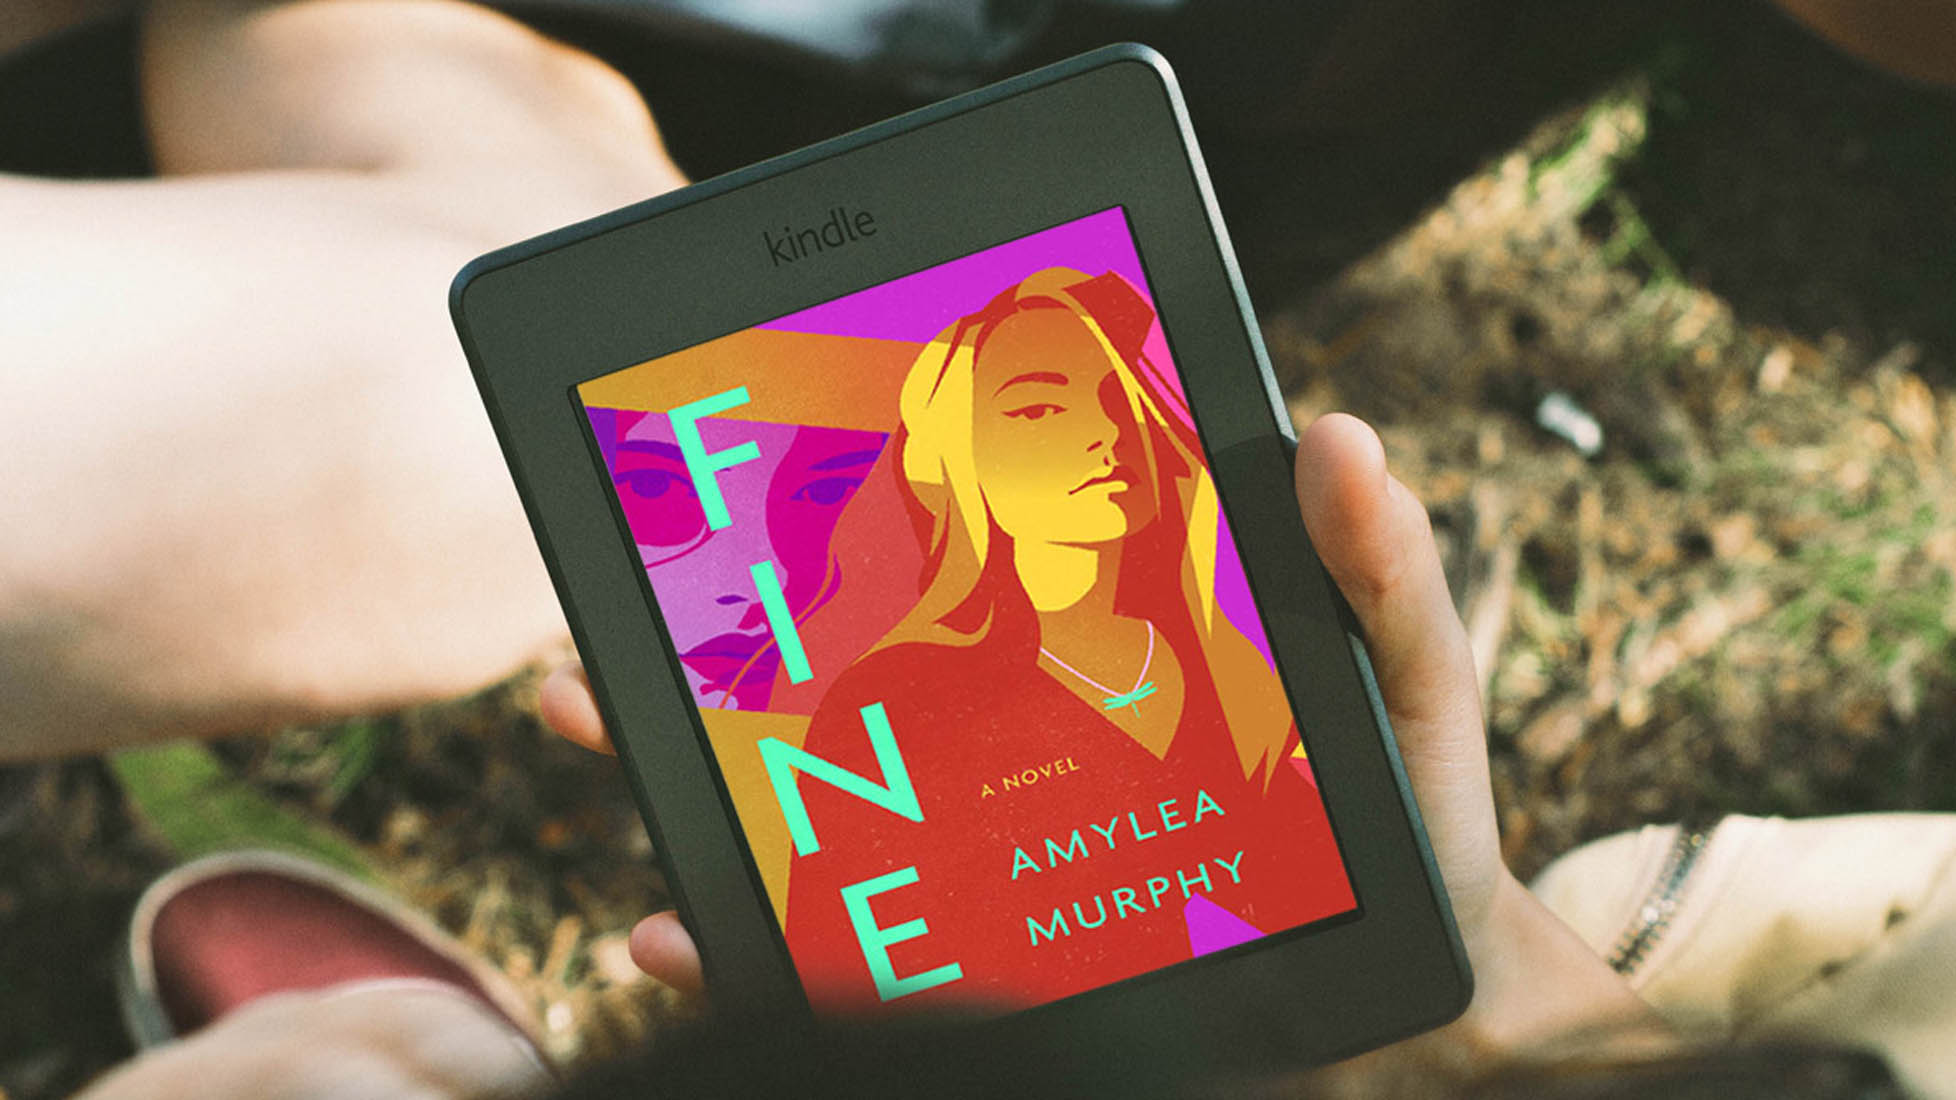 Book cover Image of Fine on kindle